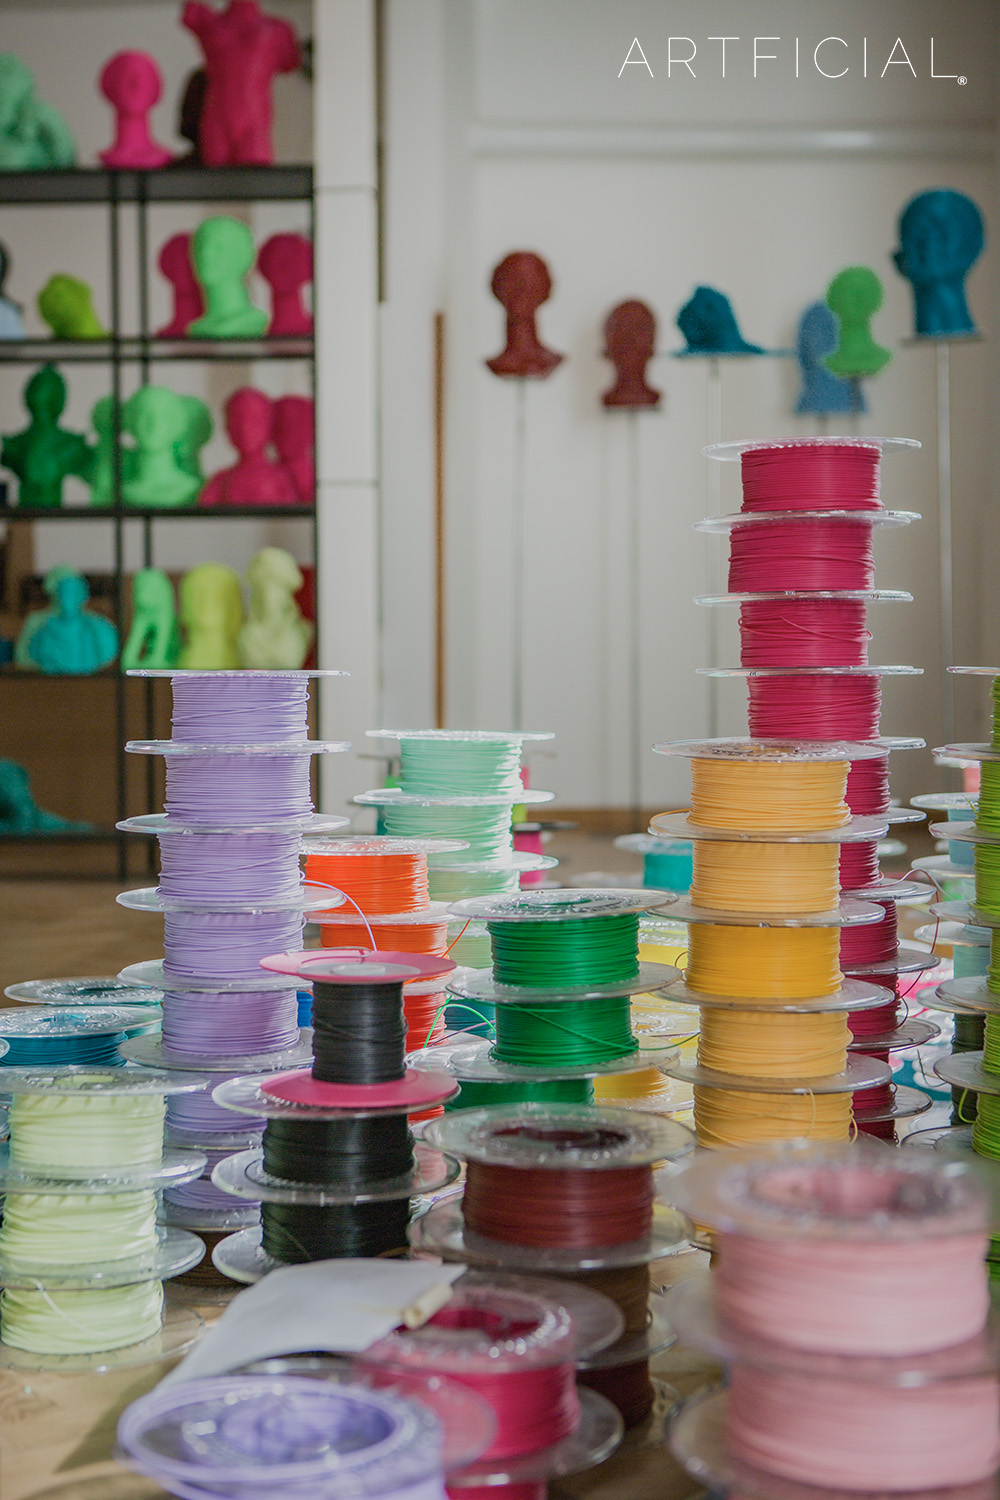 Colored Filaments and Artficial Clones inside the Factory of the Future